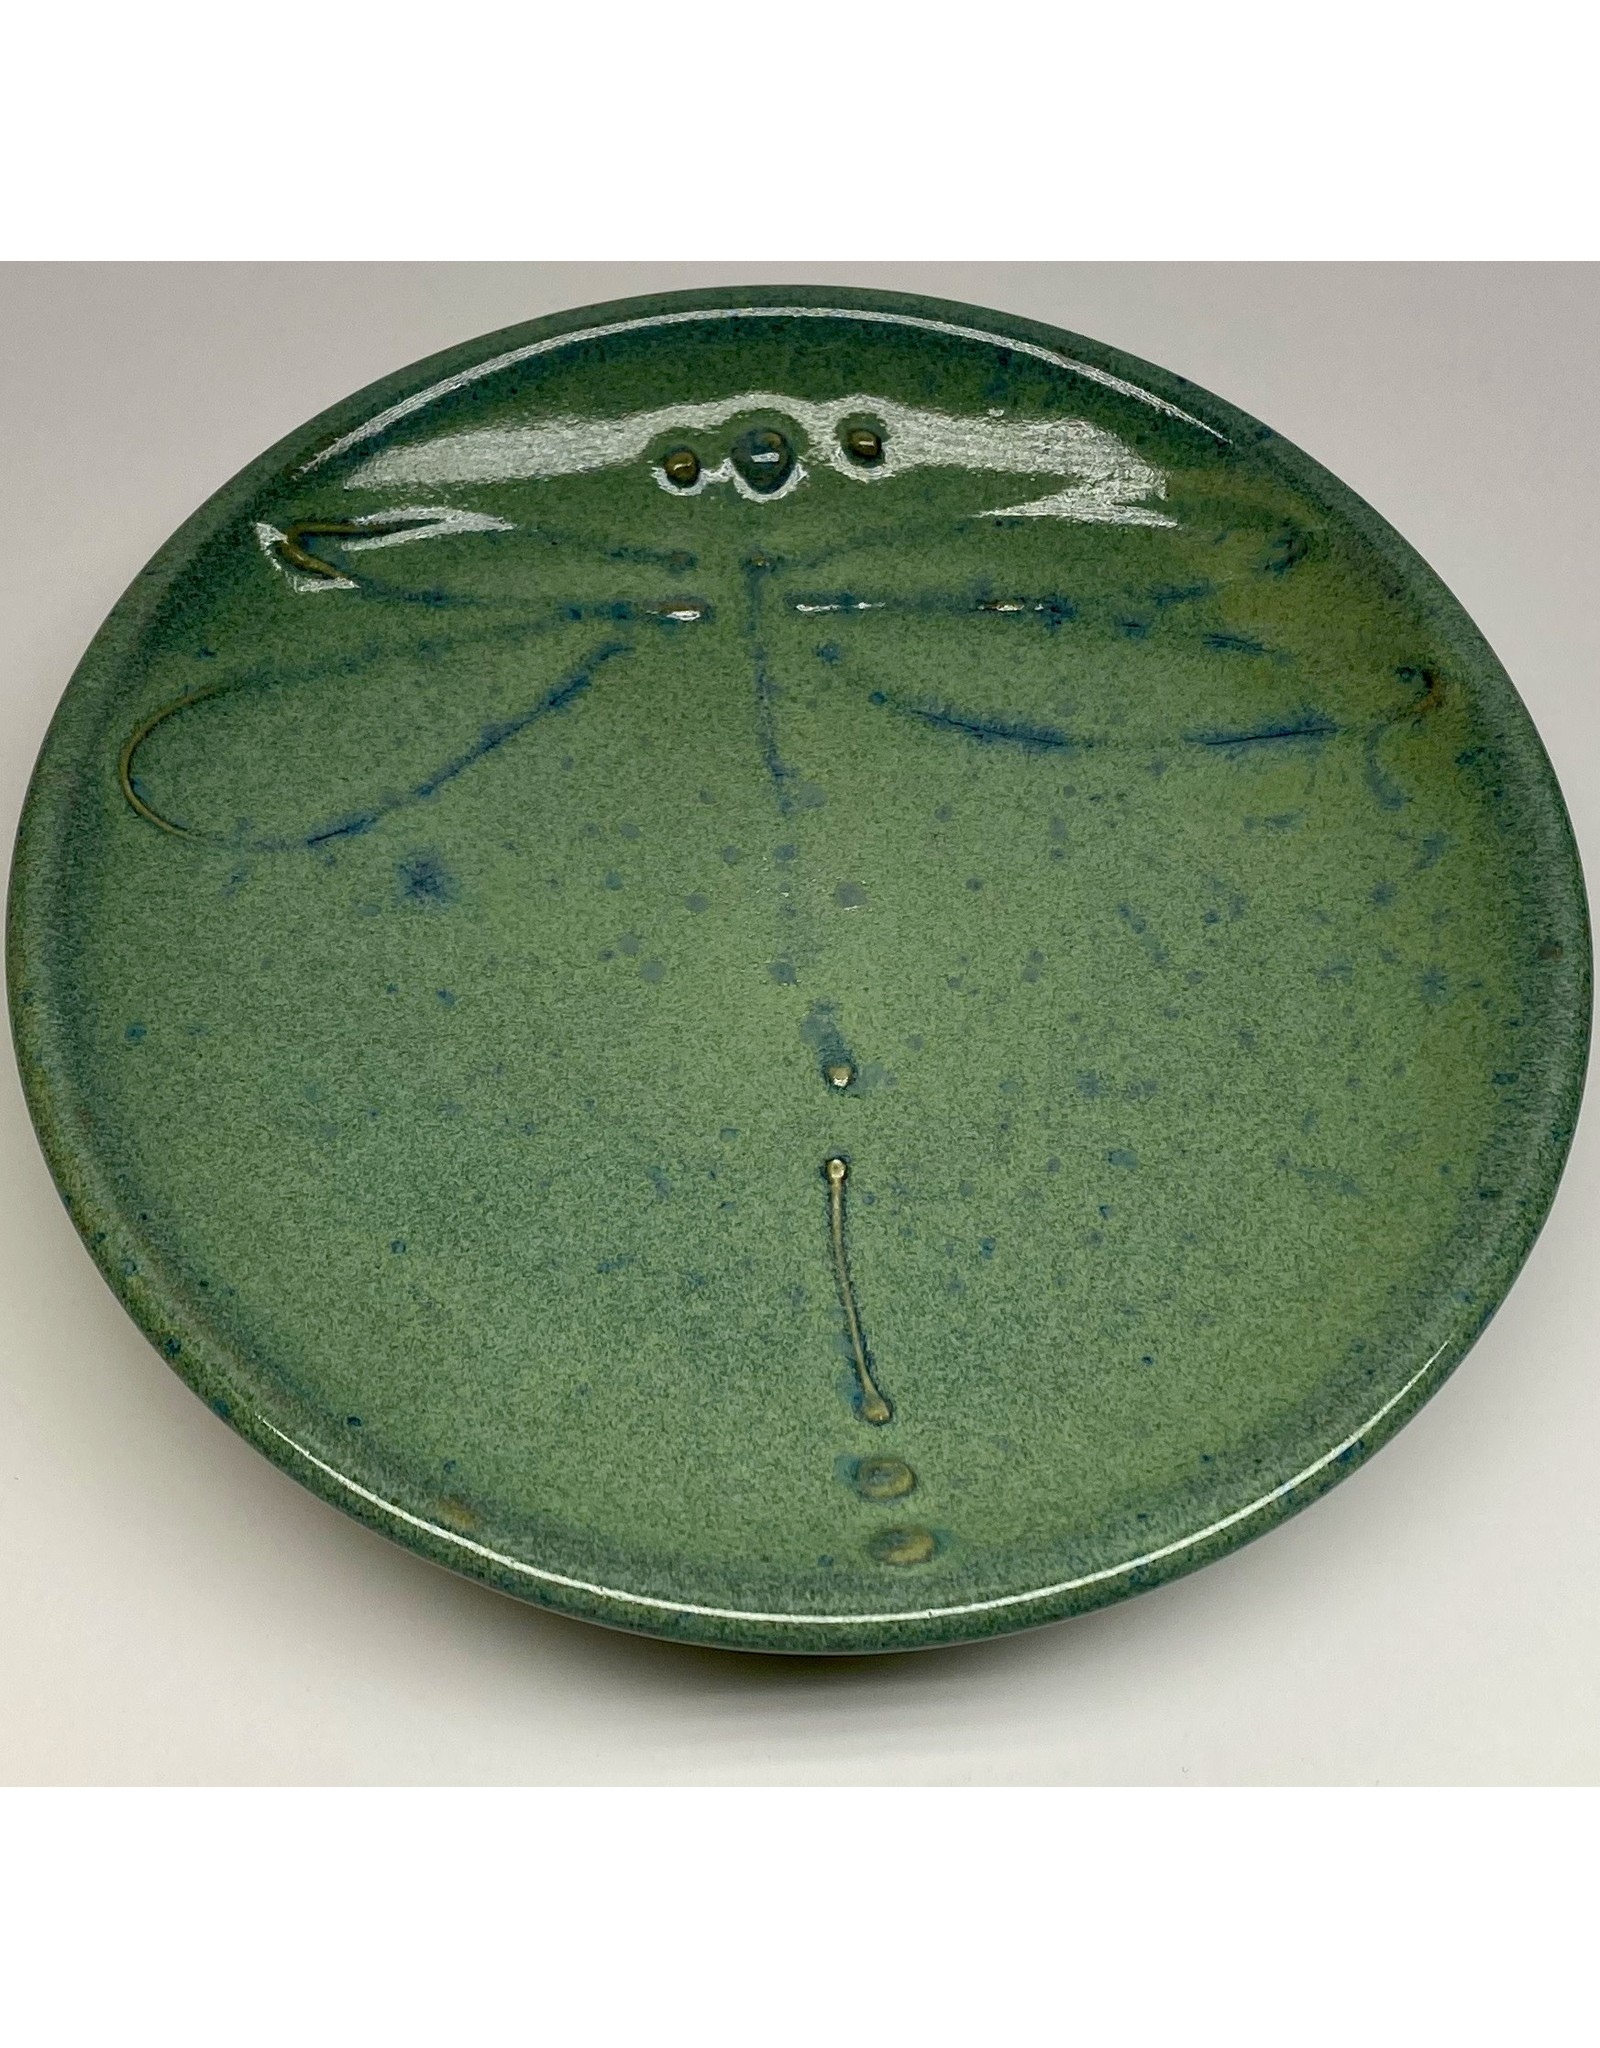 Five Finger Pottery Large Plate (dragonfly)   Five Finger Pottery